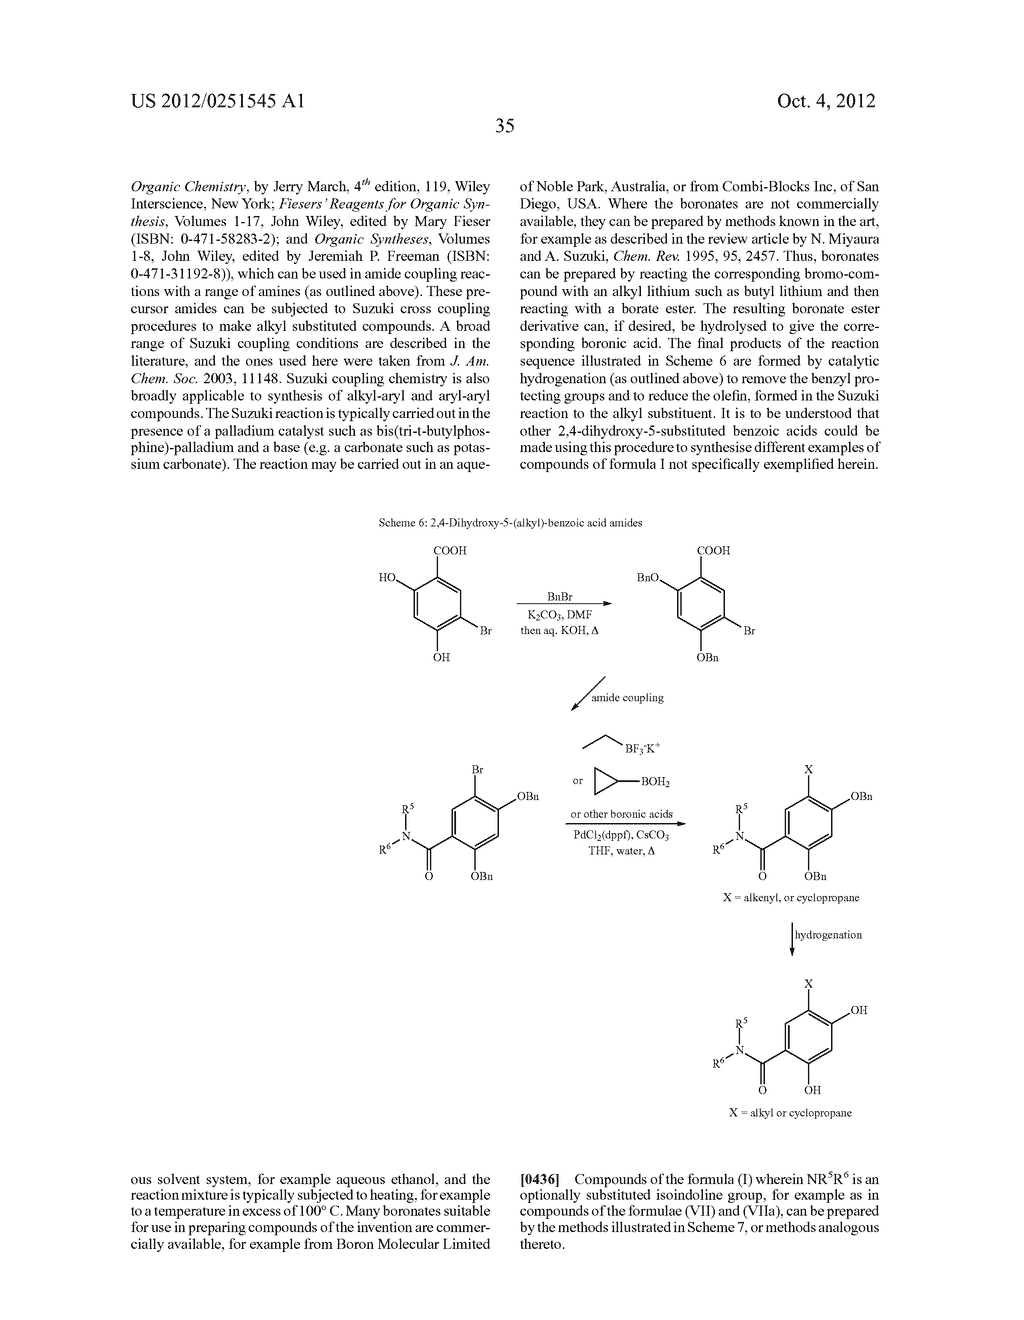 Therapeutic Combinations Of Hydroxybenzamide Derivatives As Inhibitors Of     HSP90 - diagram, schematic, and image 36